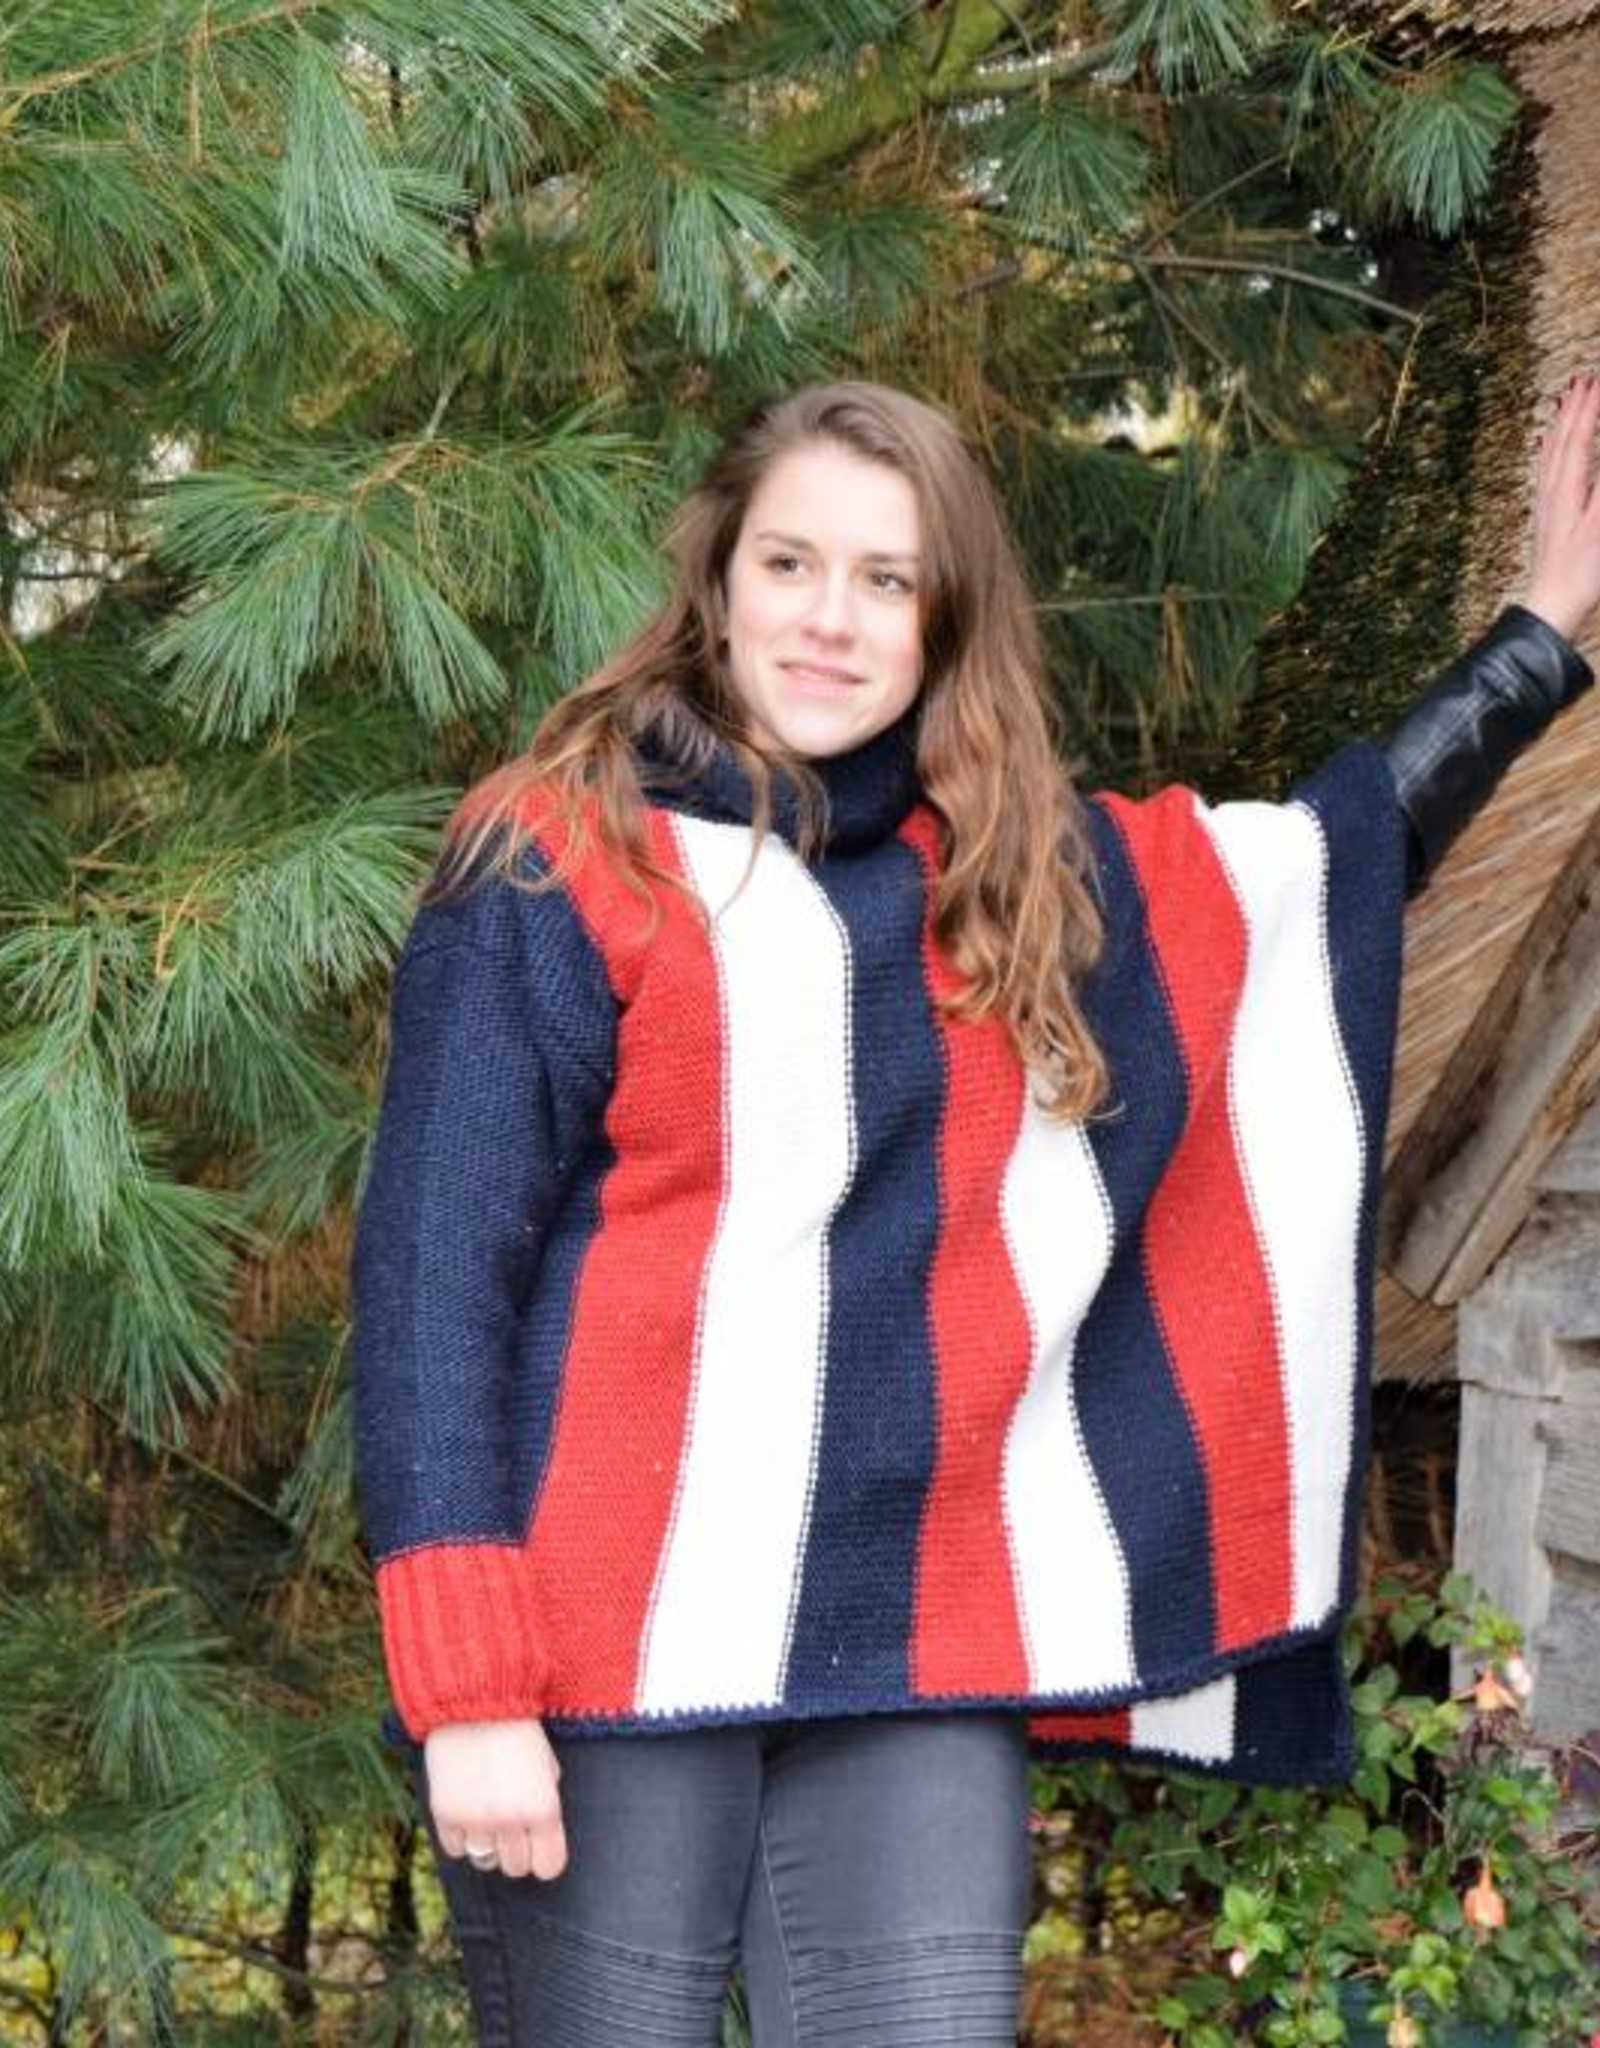 """Coina"" poncho trui in rood wit en blauw"